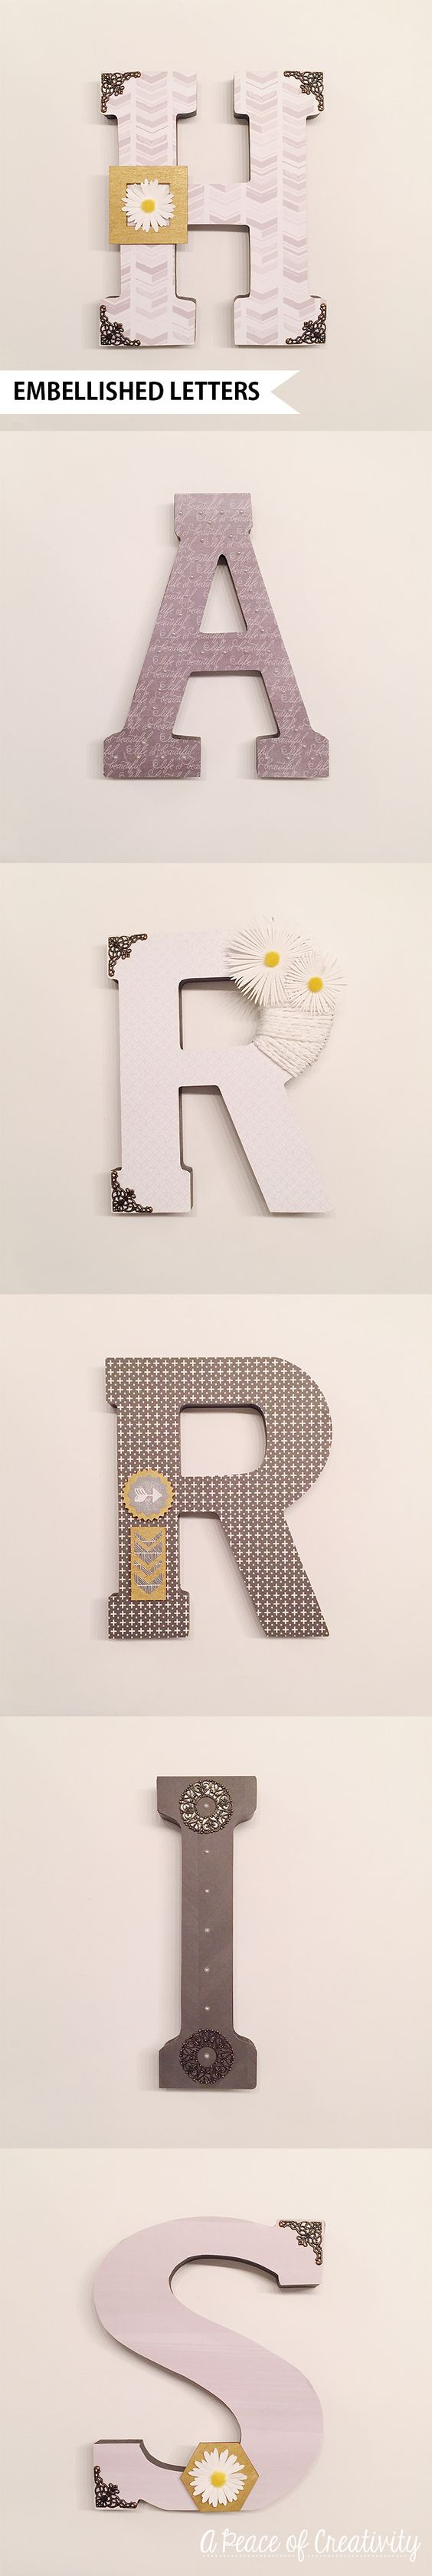 Embellished Letters   A Peace of Creativity